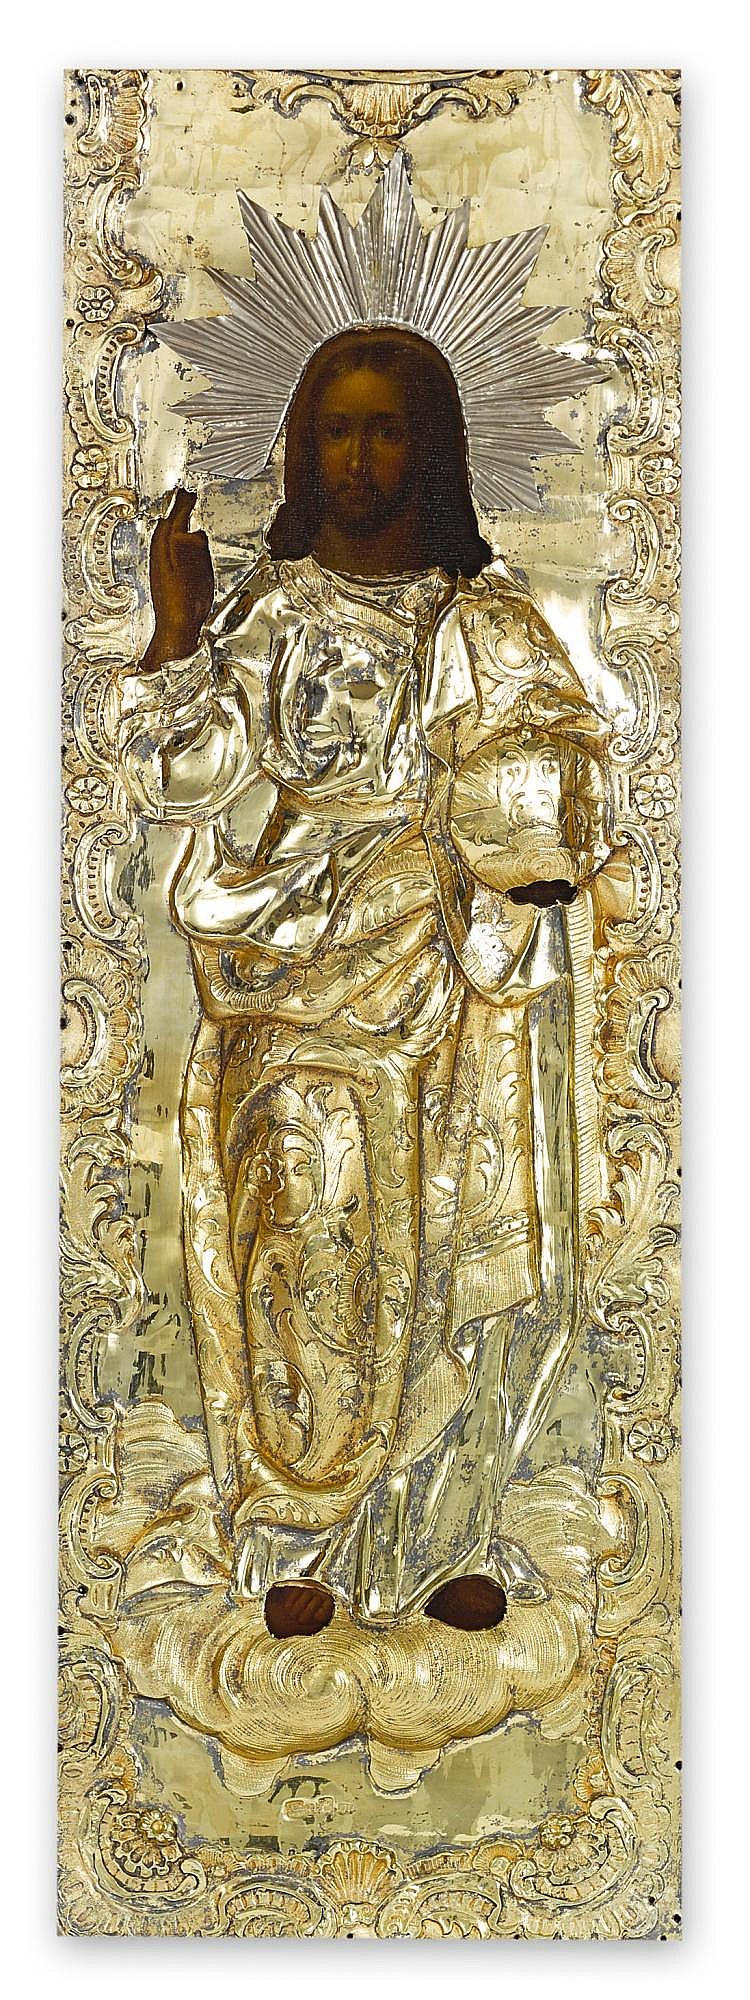 A RUSSIAN ICON OF CHRIST WITH SILVER-GILT OKLAD, MOSCOW, 1849 |